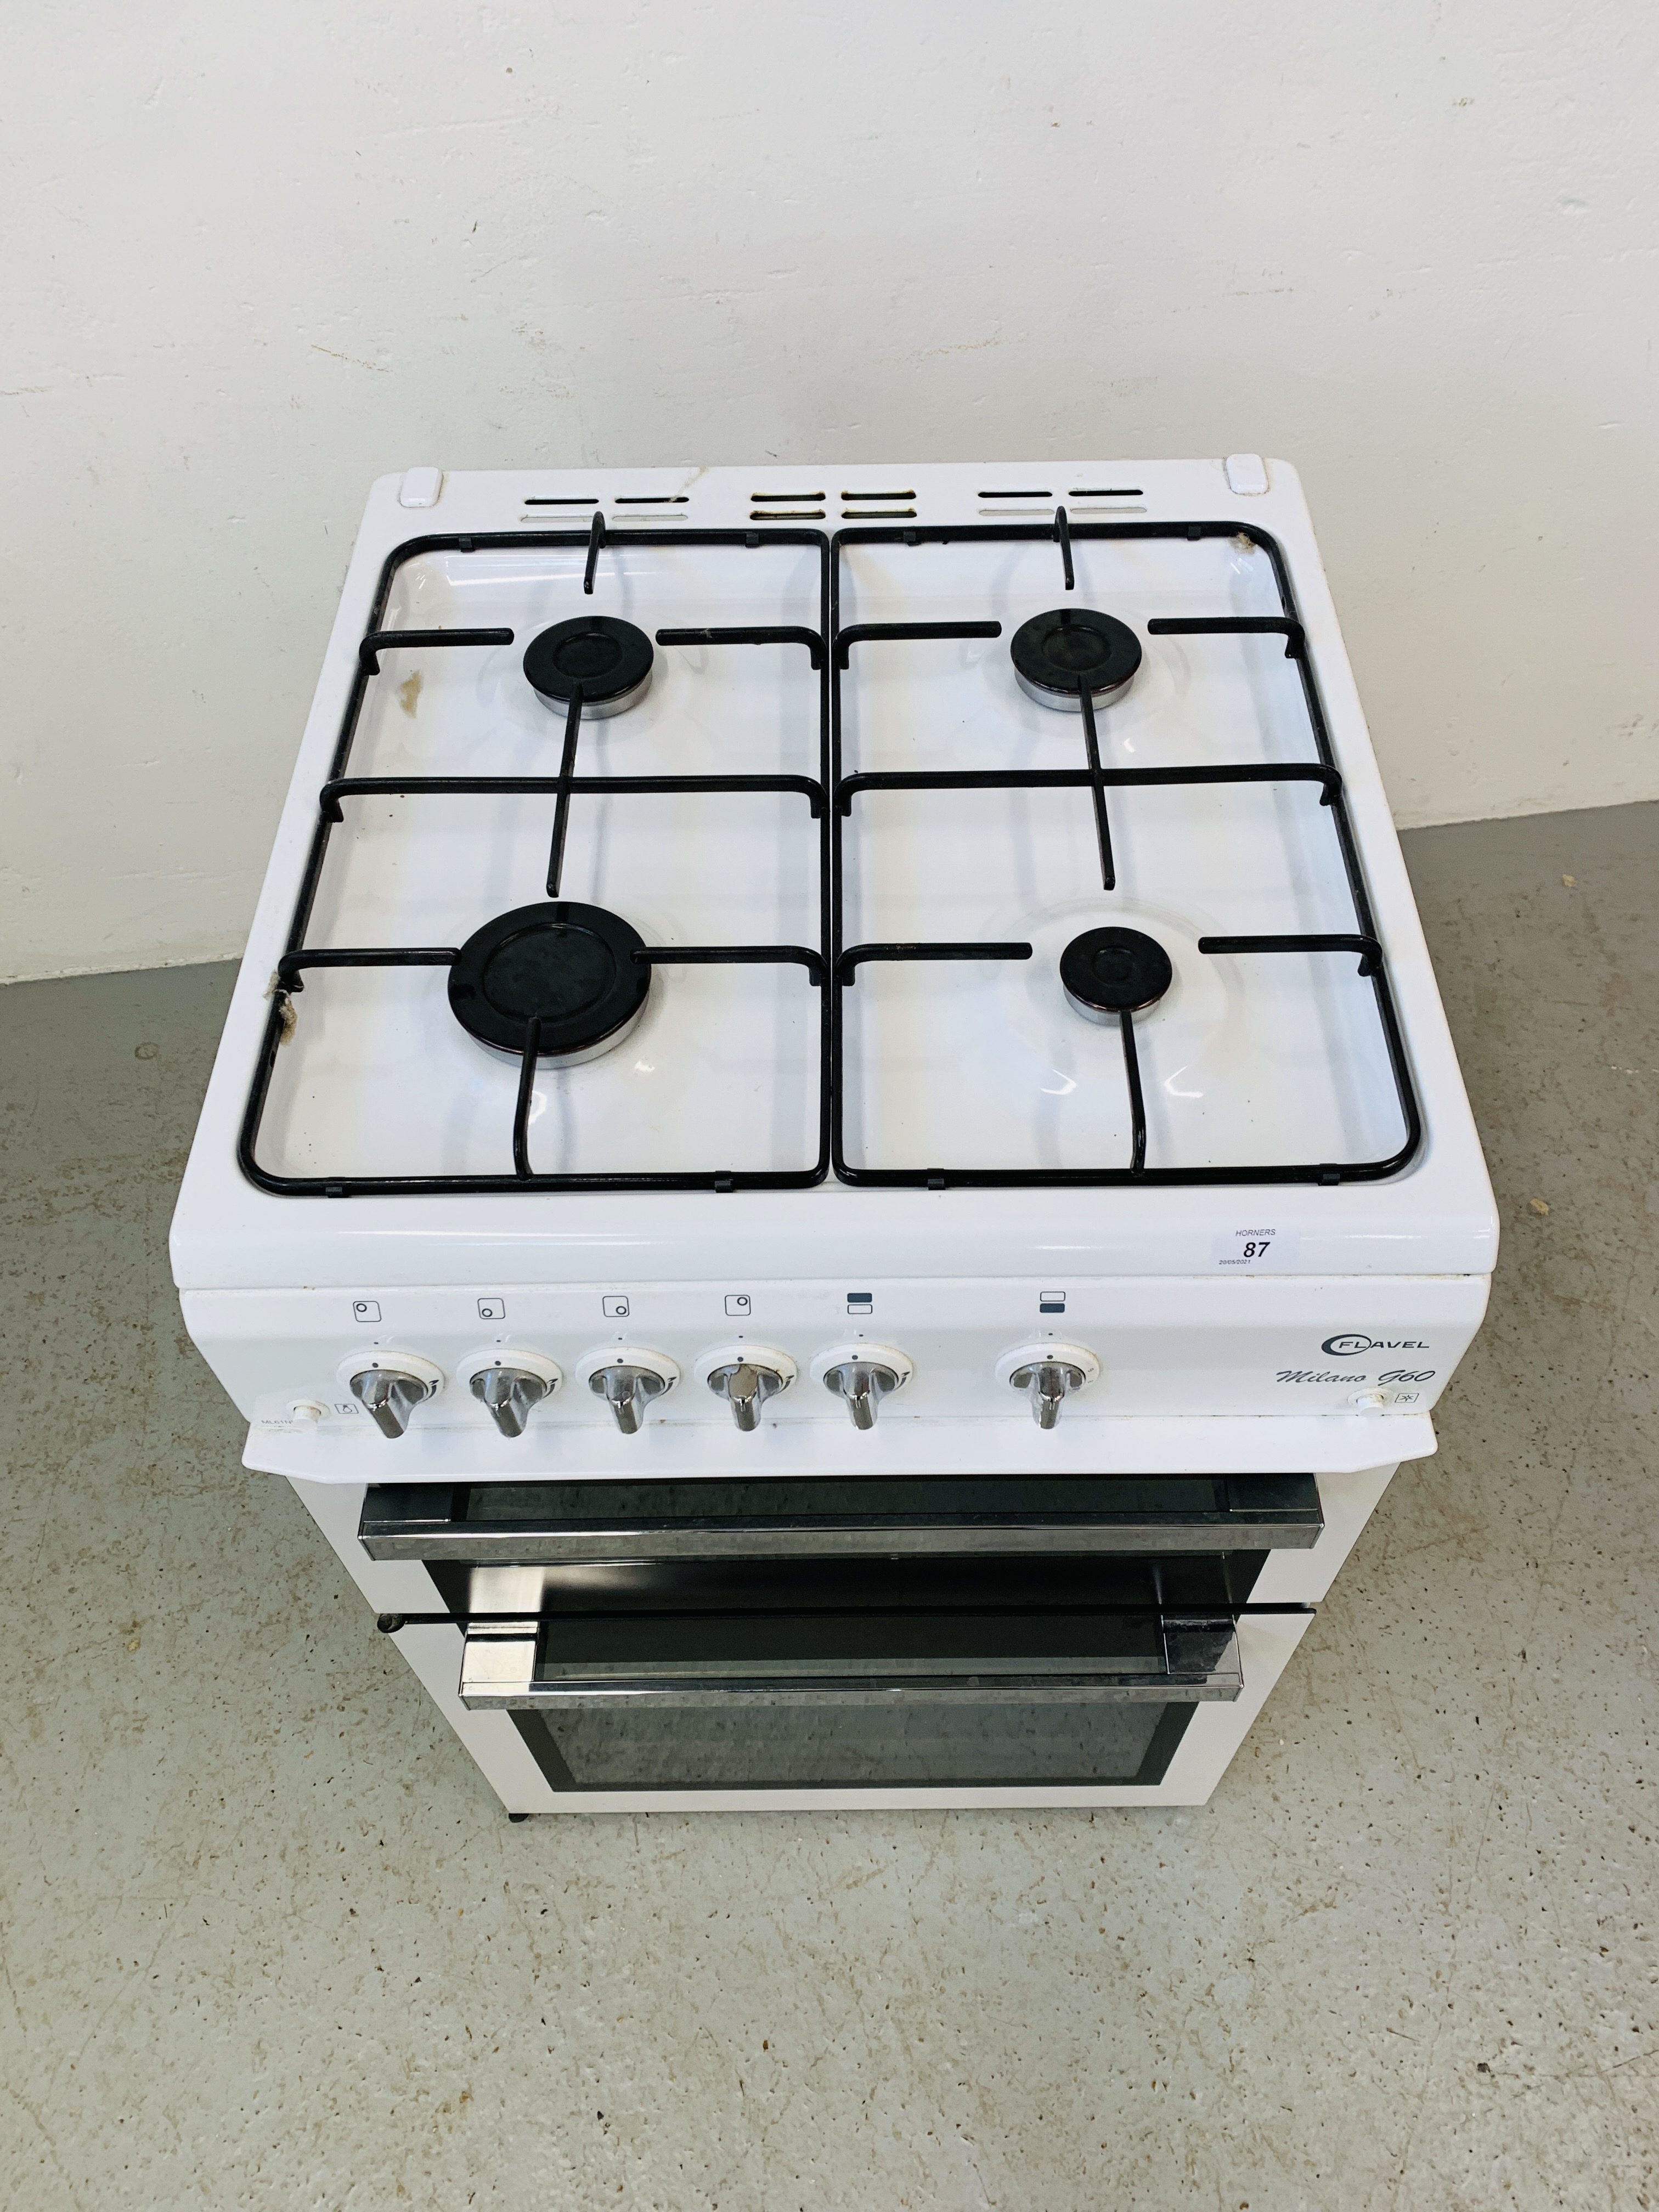 A FLAVEL MILANO G60 DOUBLE OVEN MAINS GAS COOKER - TRADE ONLY - Image 2 of 9